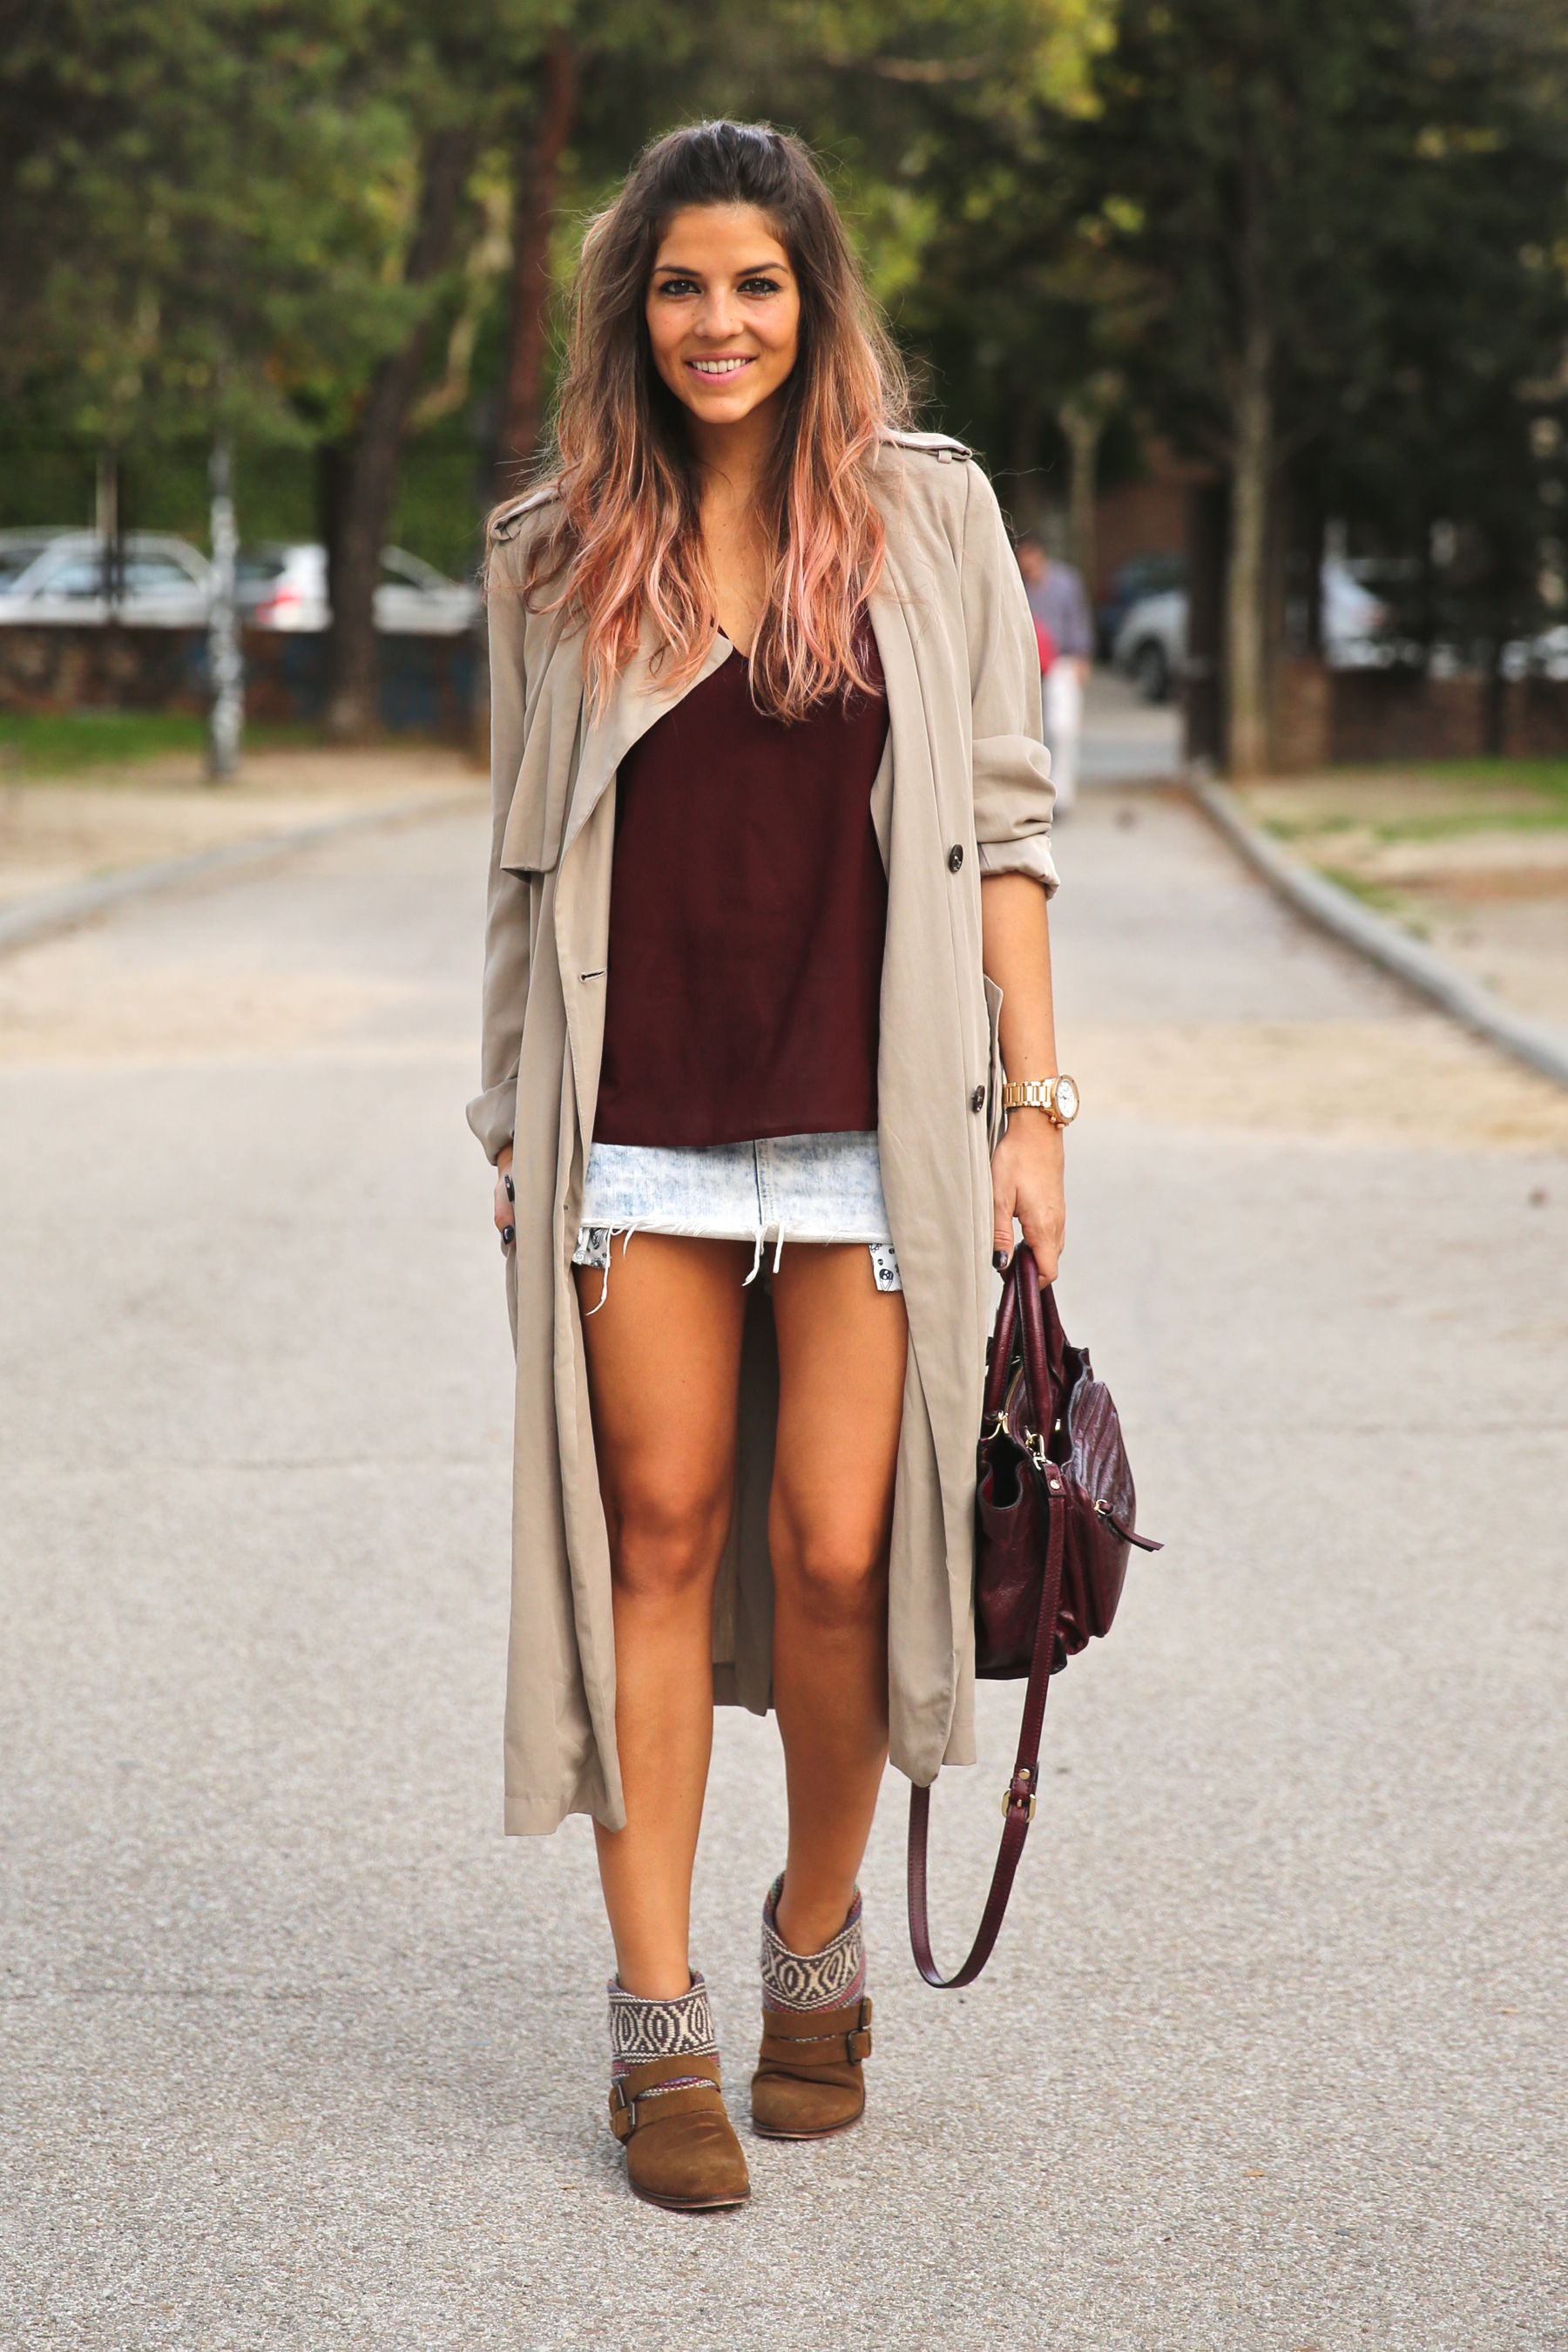 trendy_taste-look-outfit-street_style-ootd-blog-blogger-fashion_spain-moda_españa-boho-hippie-gabardina-botines_camperos-booties-gabardina-raincoat-burgundy_bag-zara-8